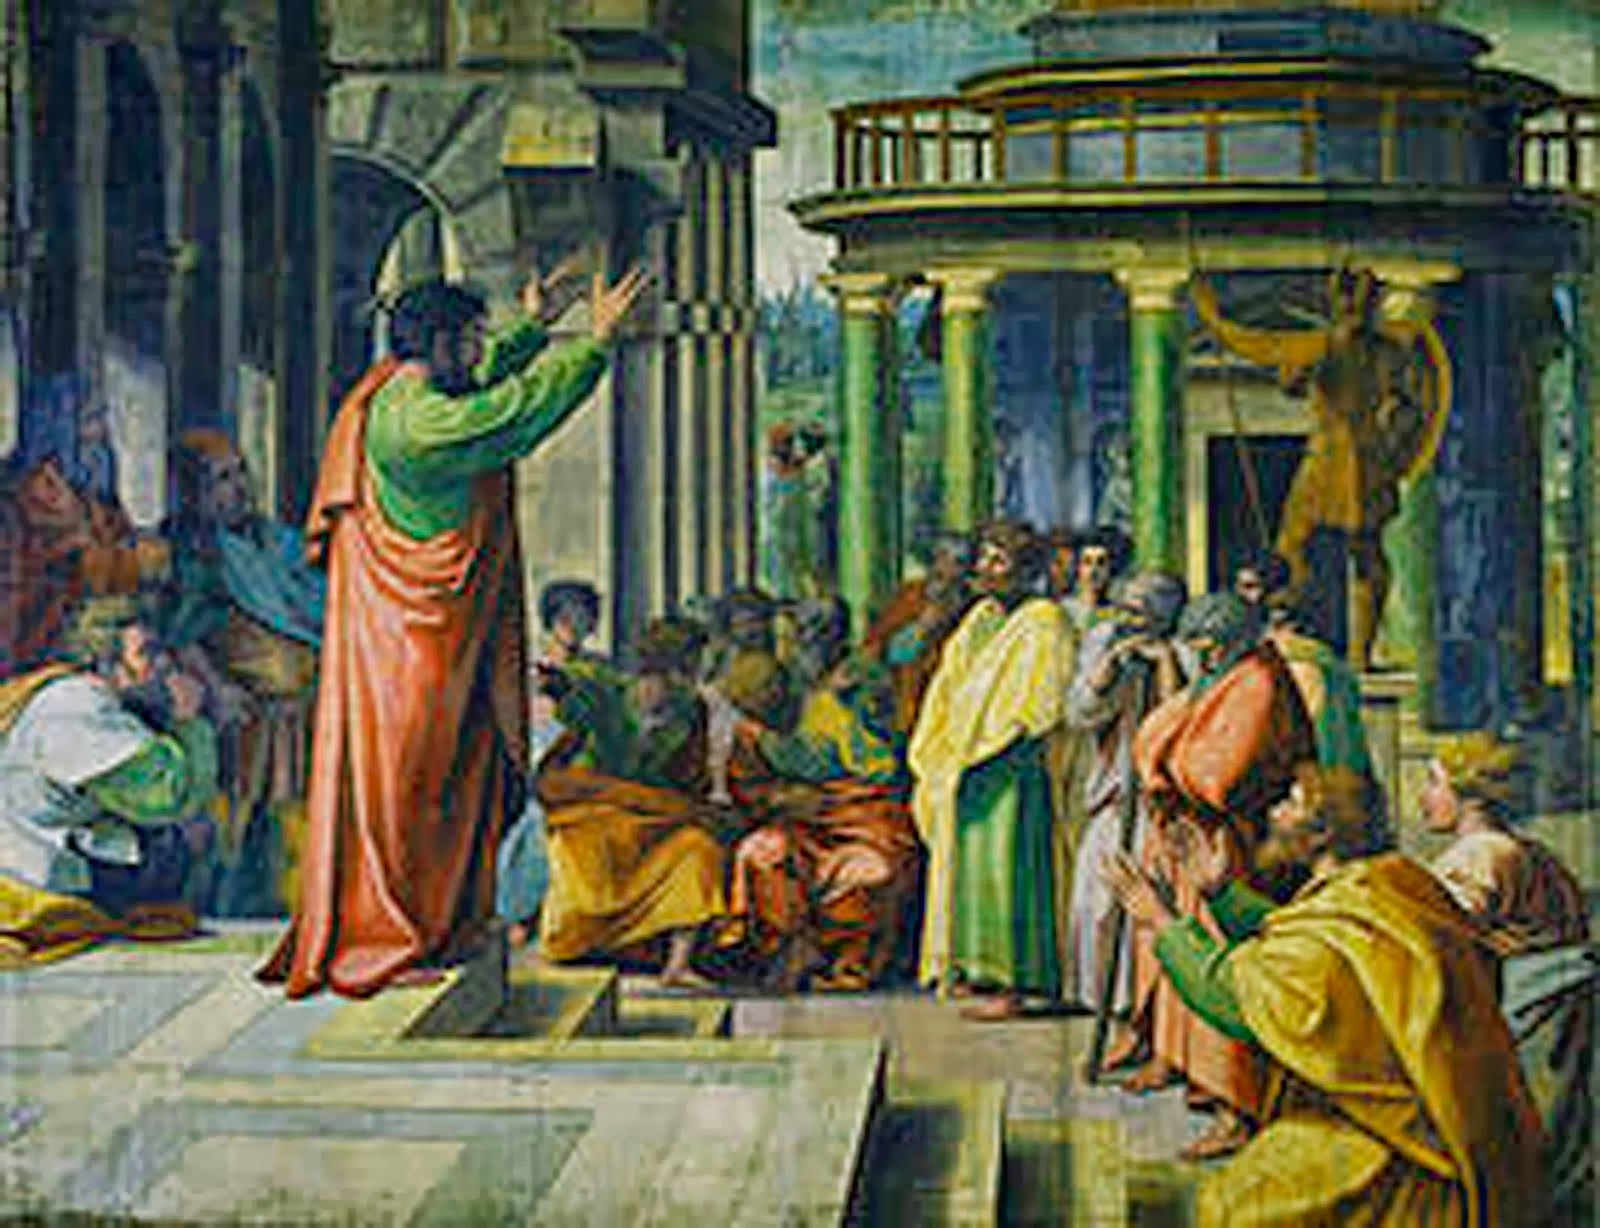 Paul lecturing at Plato's academy